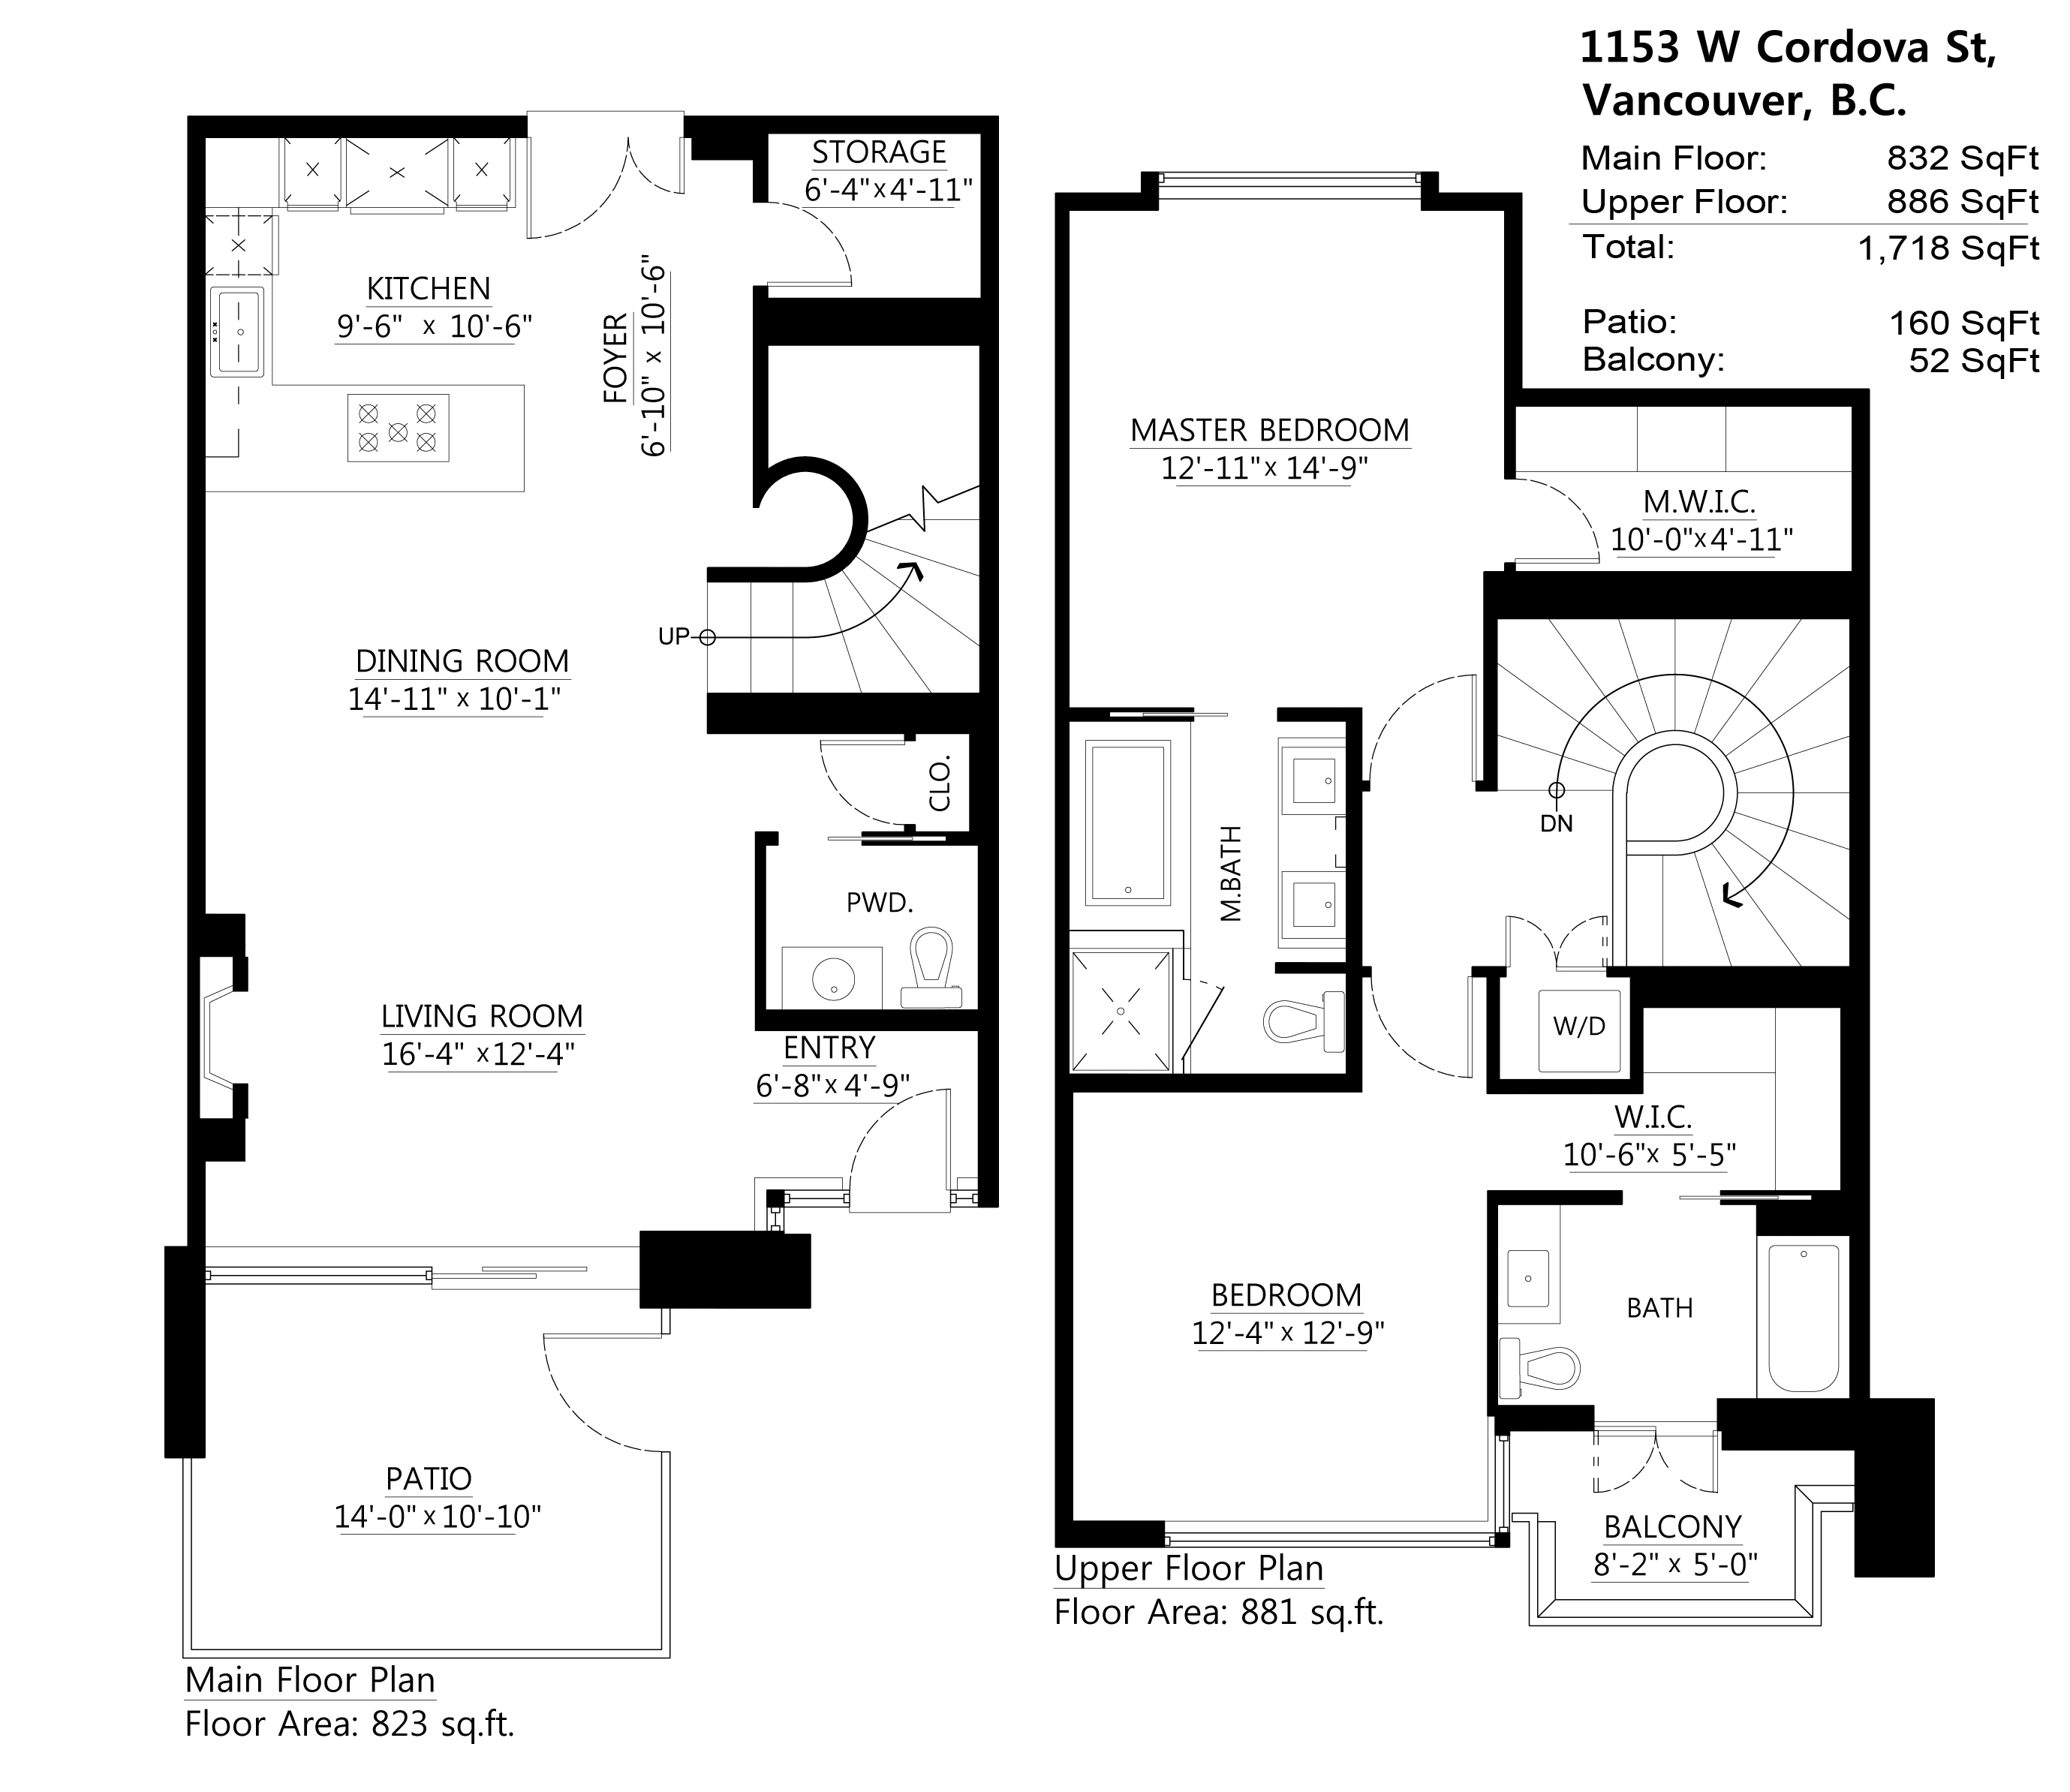 Floor Plans Vancouver House Vancouver Specials Faq Your